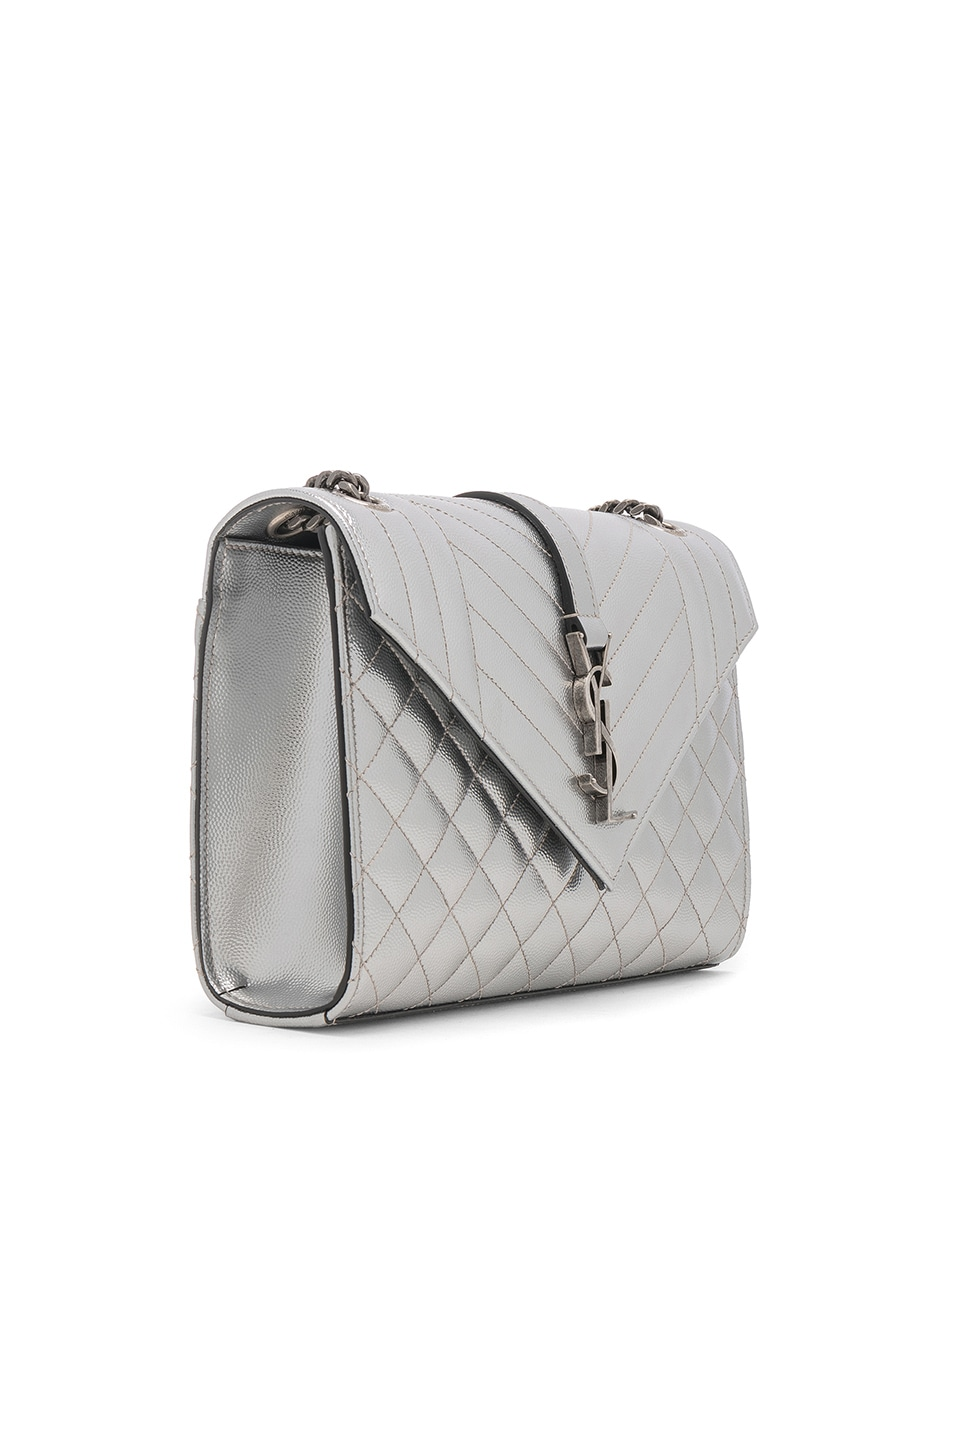 Image 4 of Saint Laurent Medium Envelope Monogramme Bag in Silver